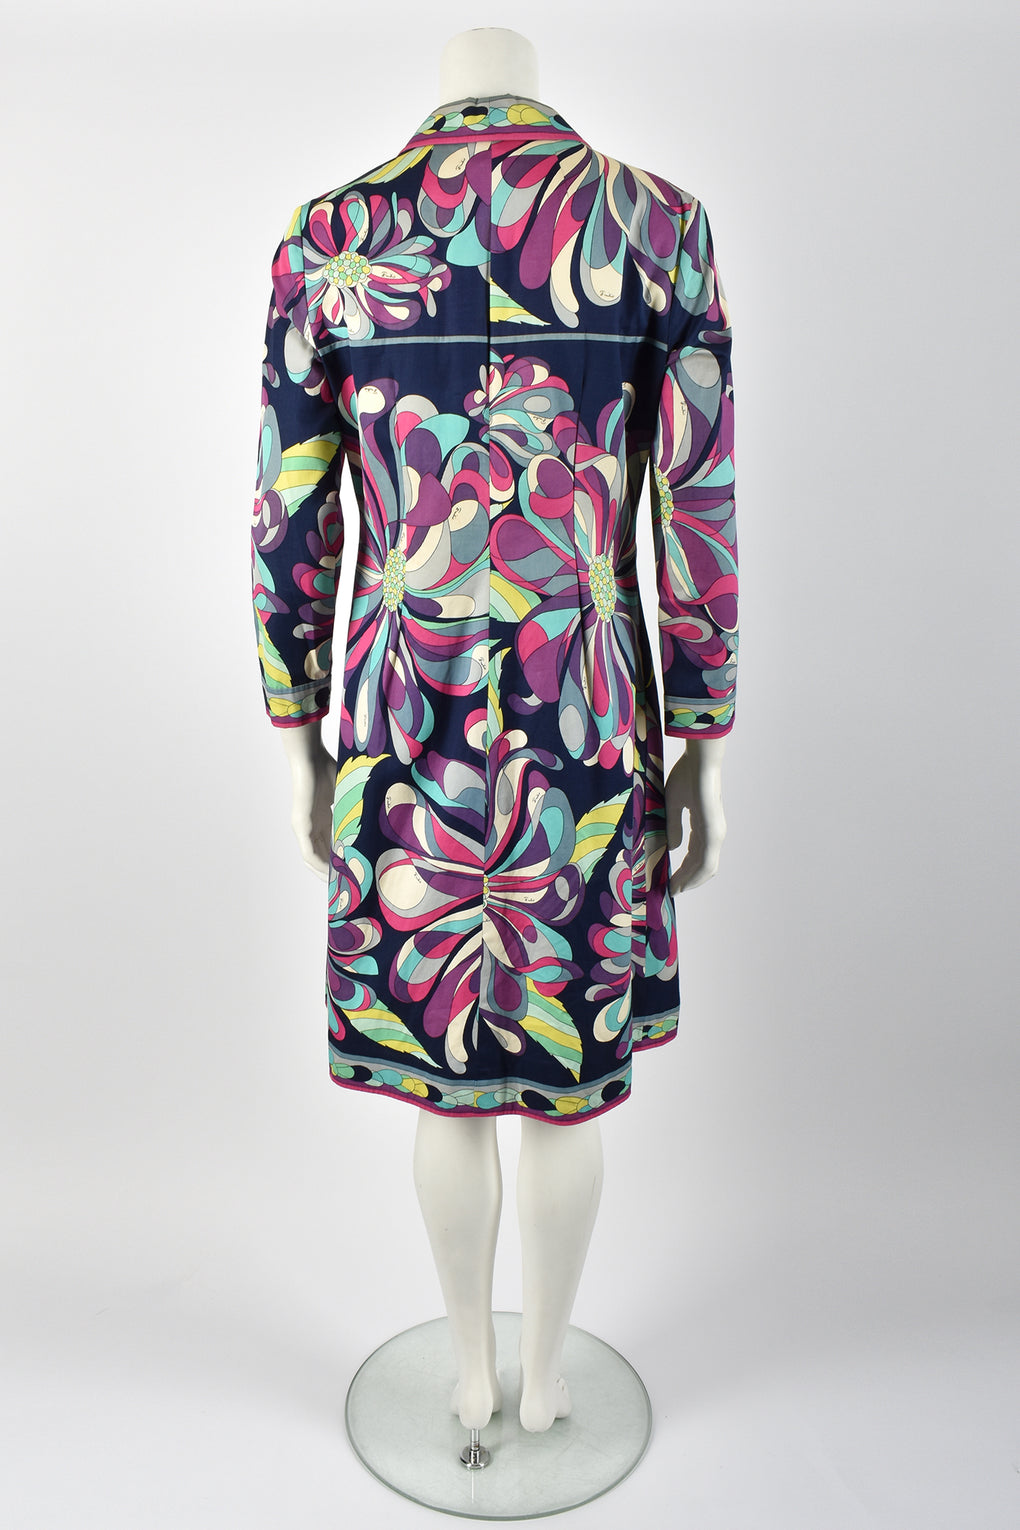 EMILIO PUCCI 60s cotton coat-dress / M-L